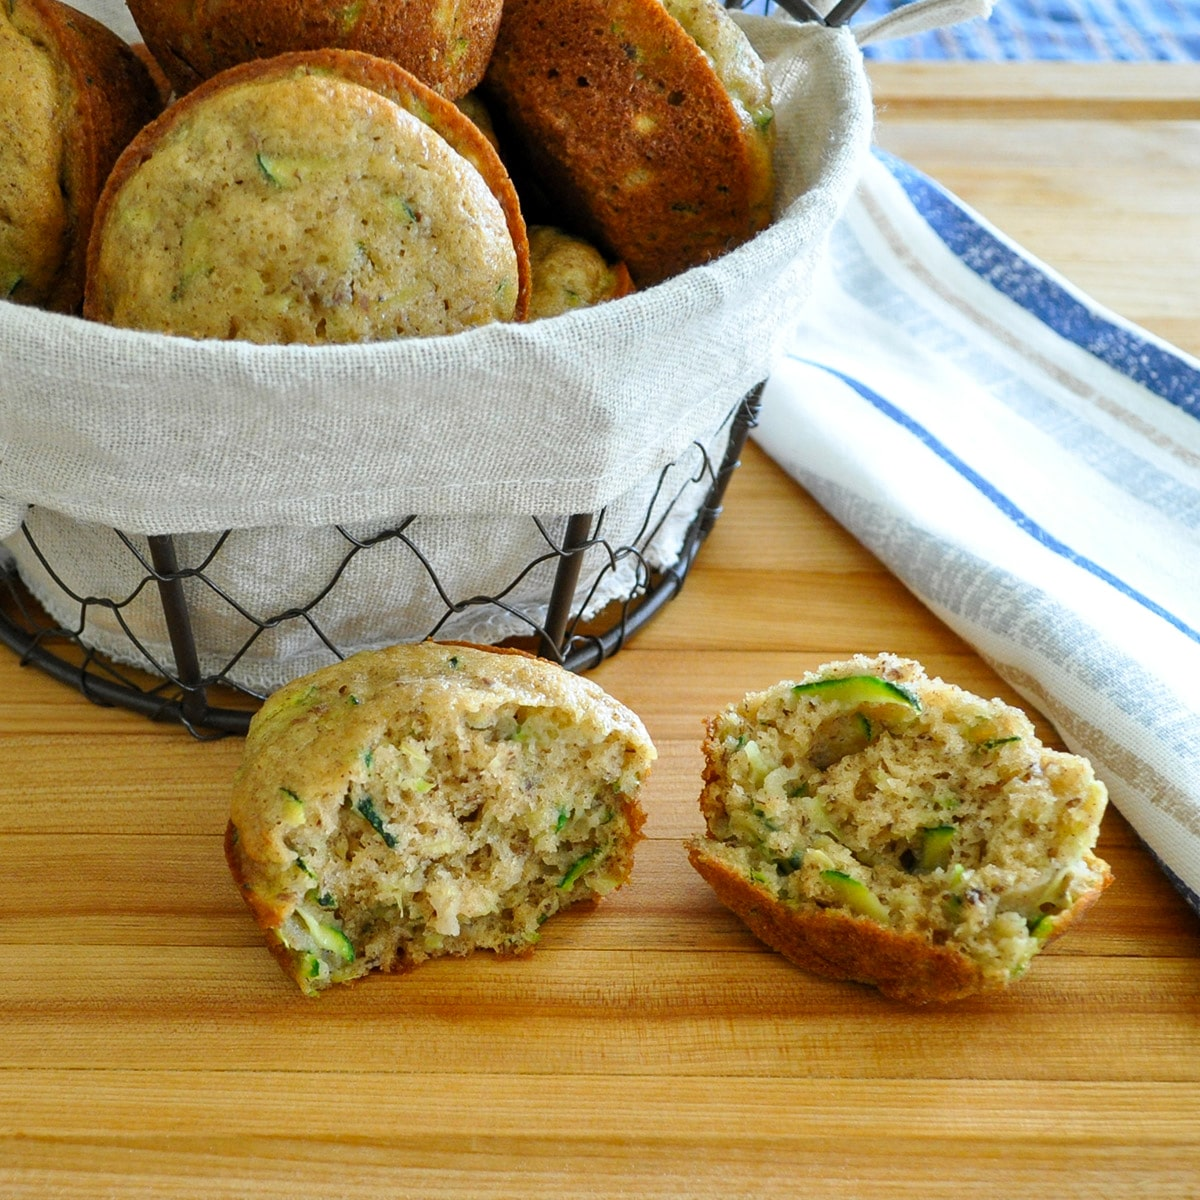 a split open zucchini muffin next to a basket of muffins